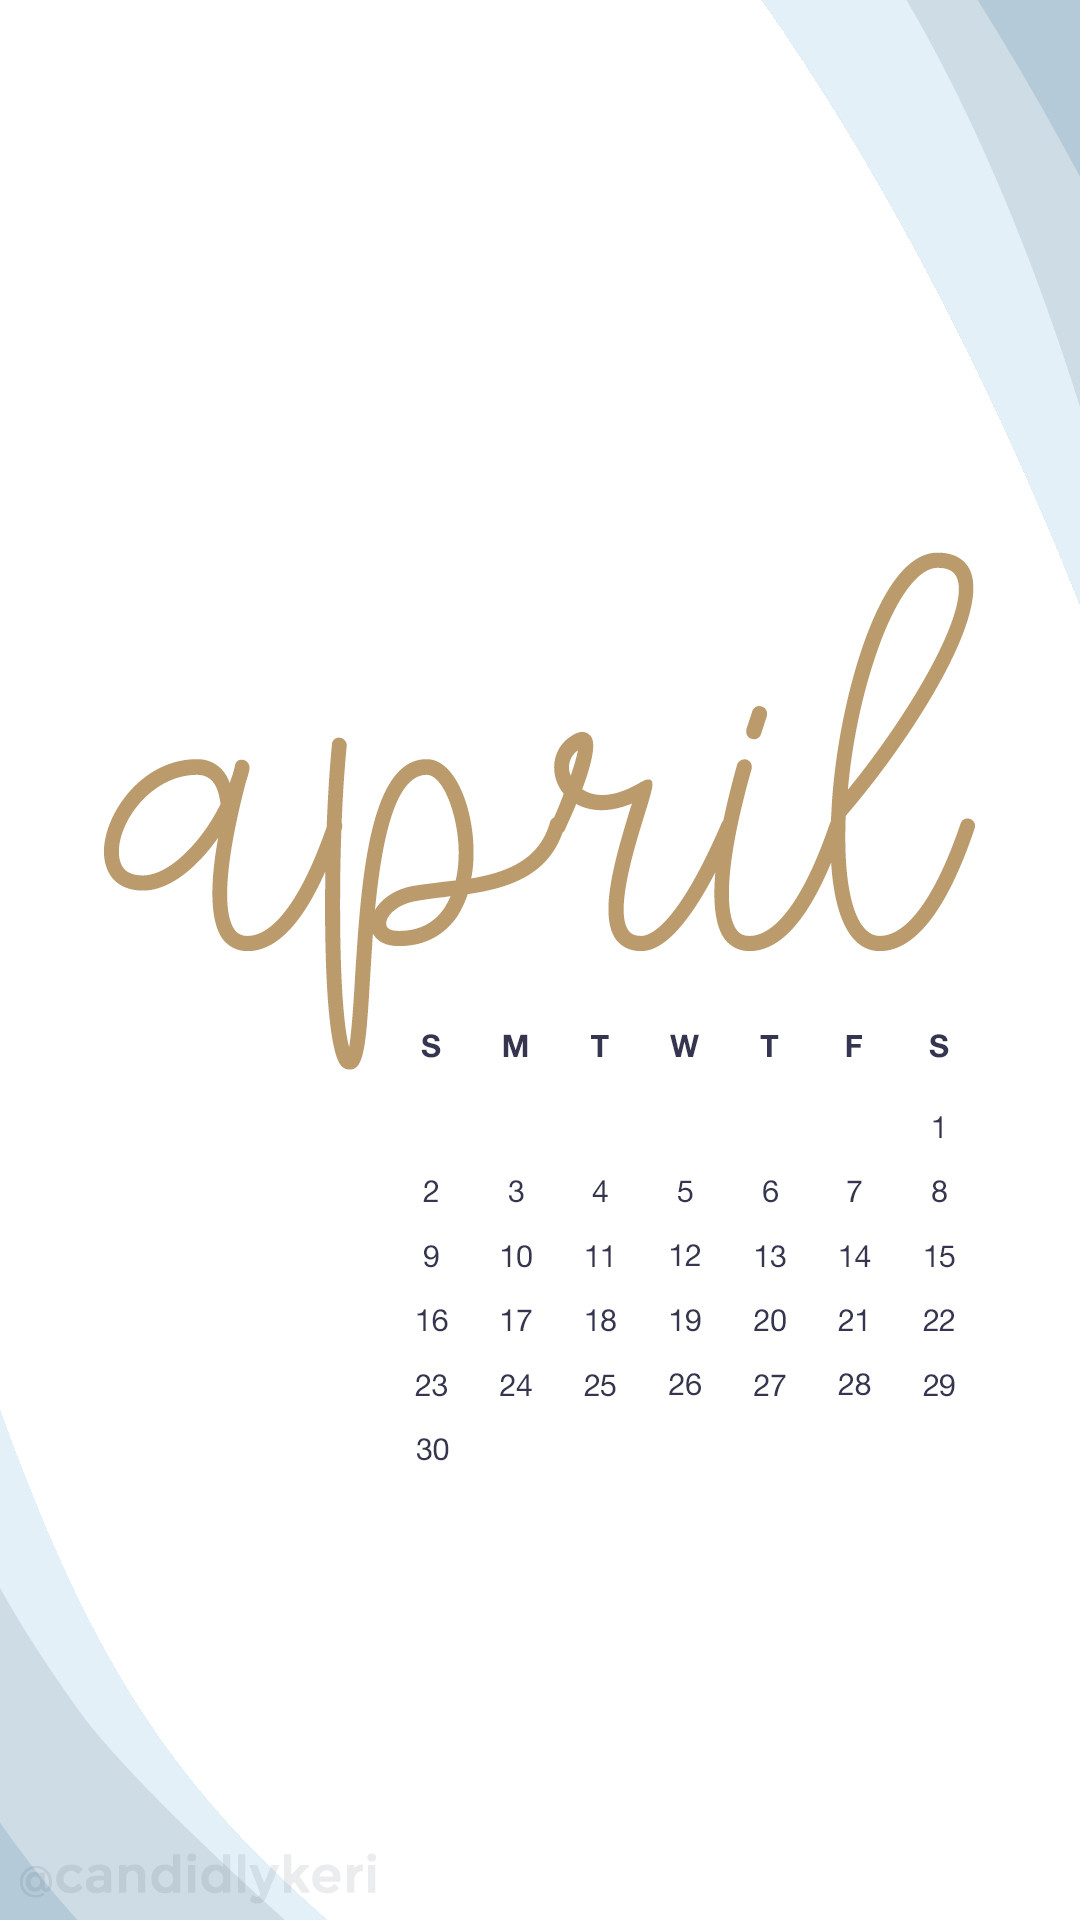 Wallpapers with Calendar 2018 57 images 1080x1920